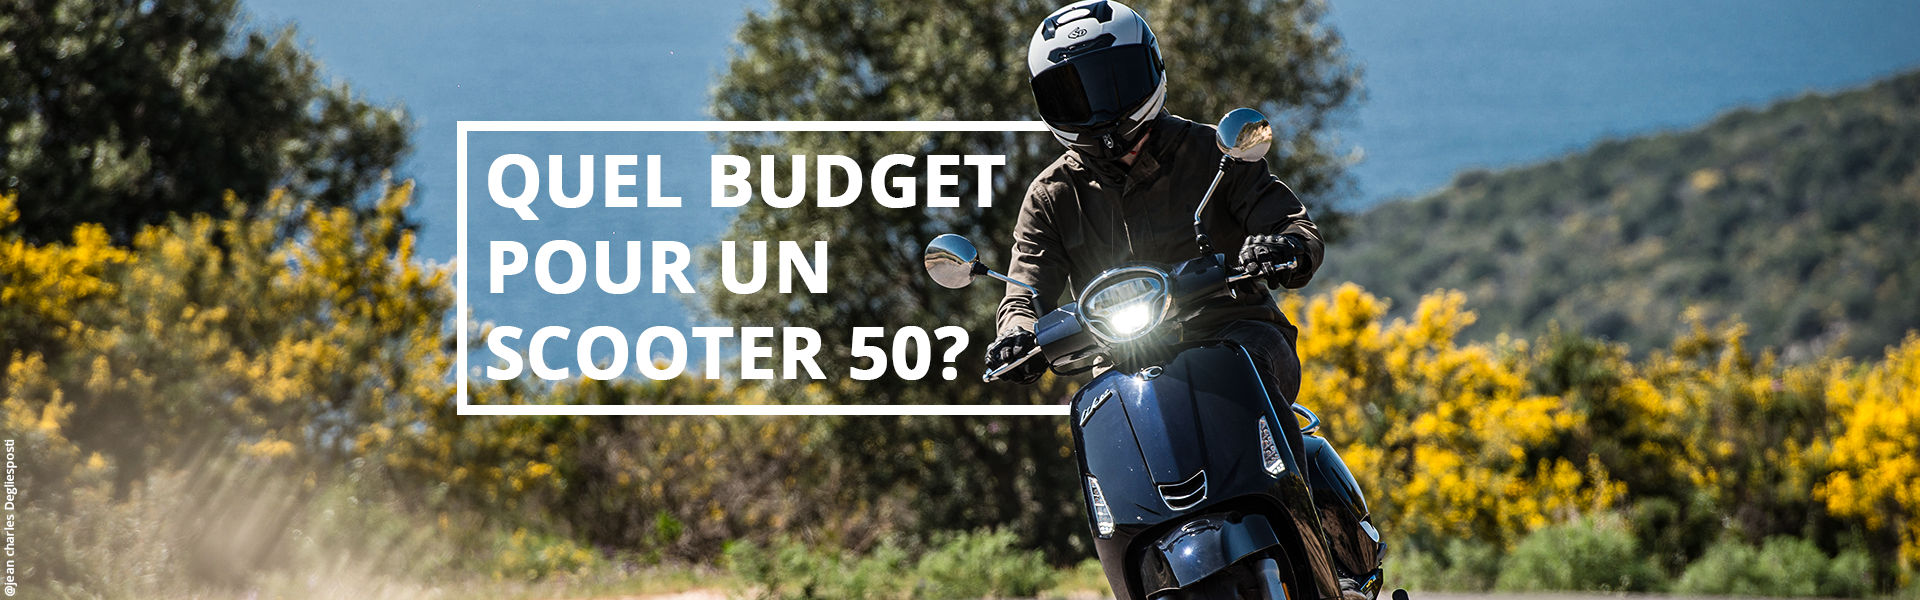 budget-achat-scooter50cc